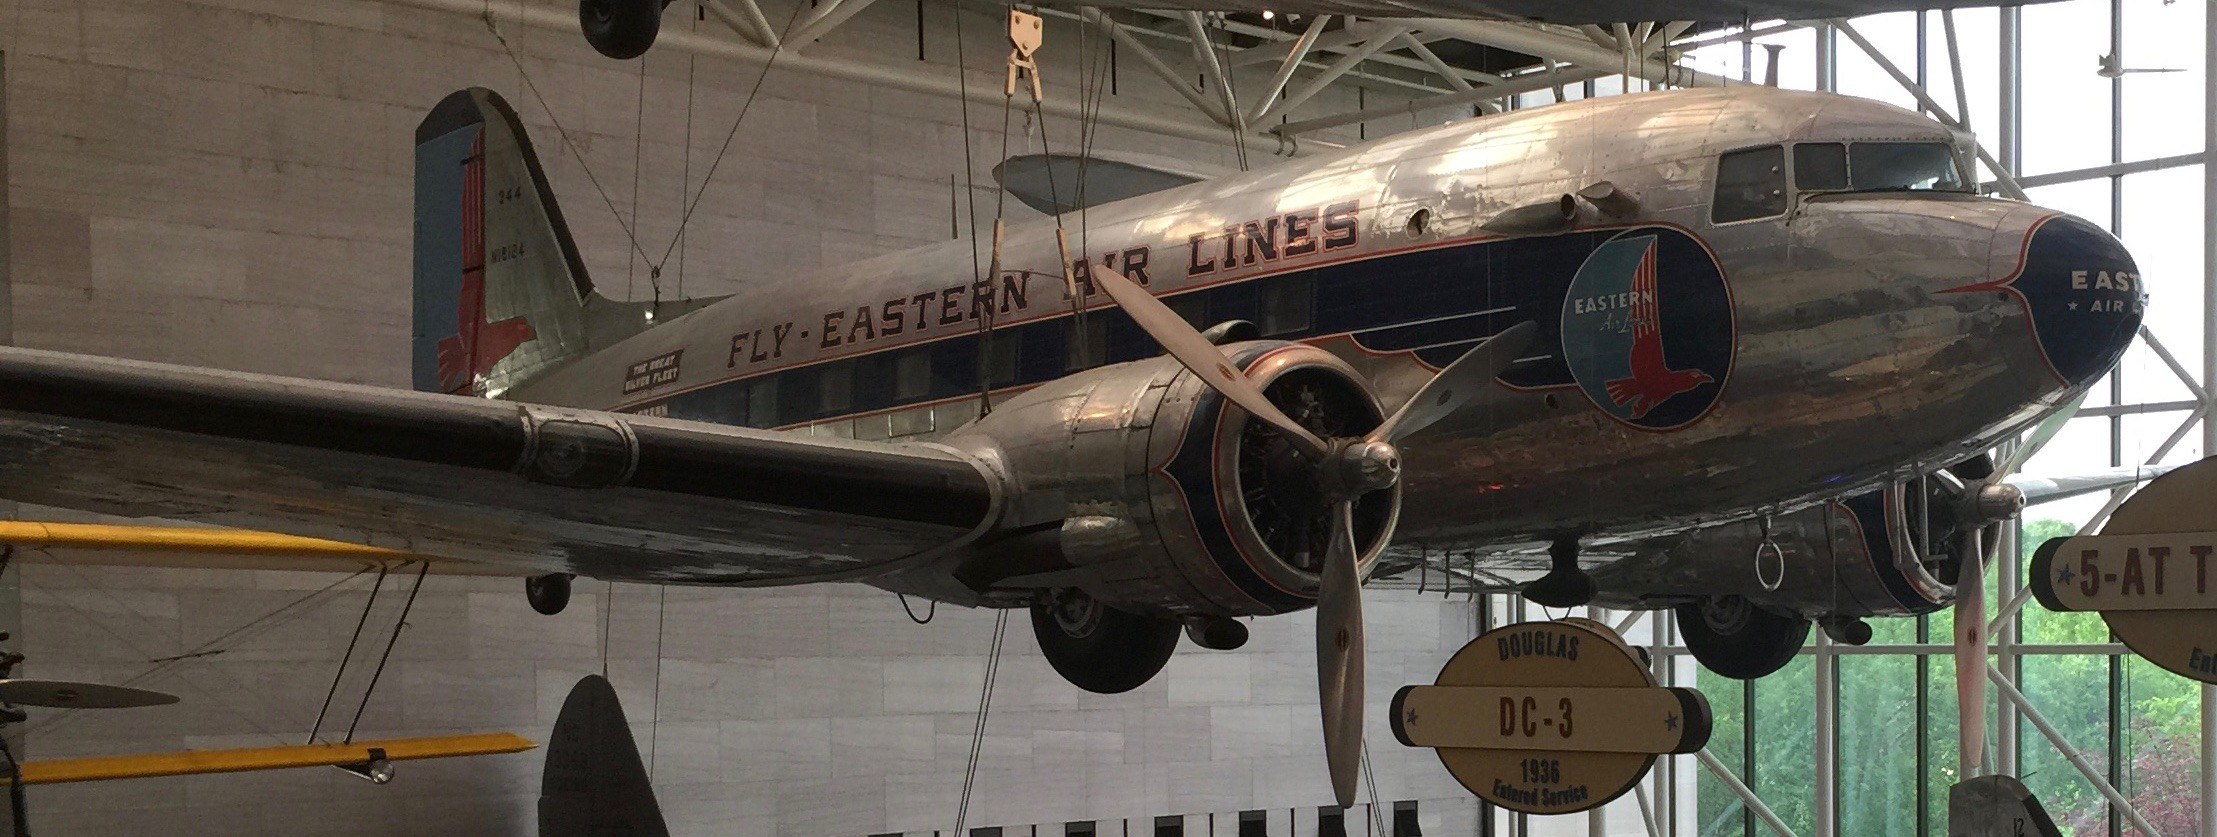 A Far Eastern Airlines branded metal polished Douglas DC-3 hanging in the Smithsonian Museum